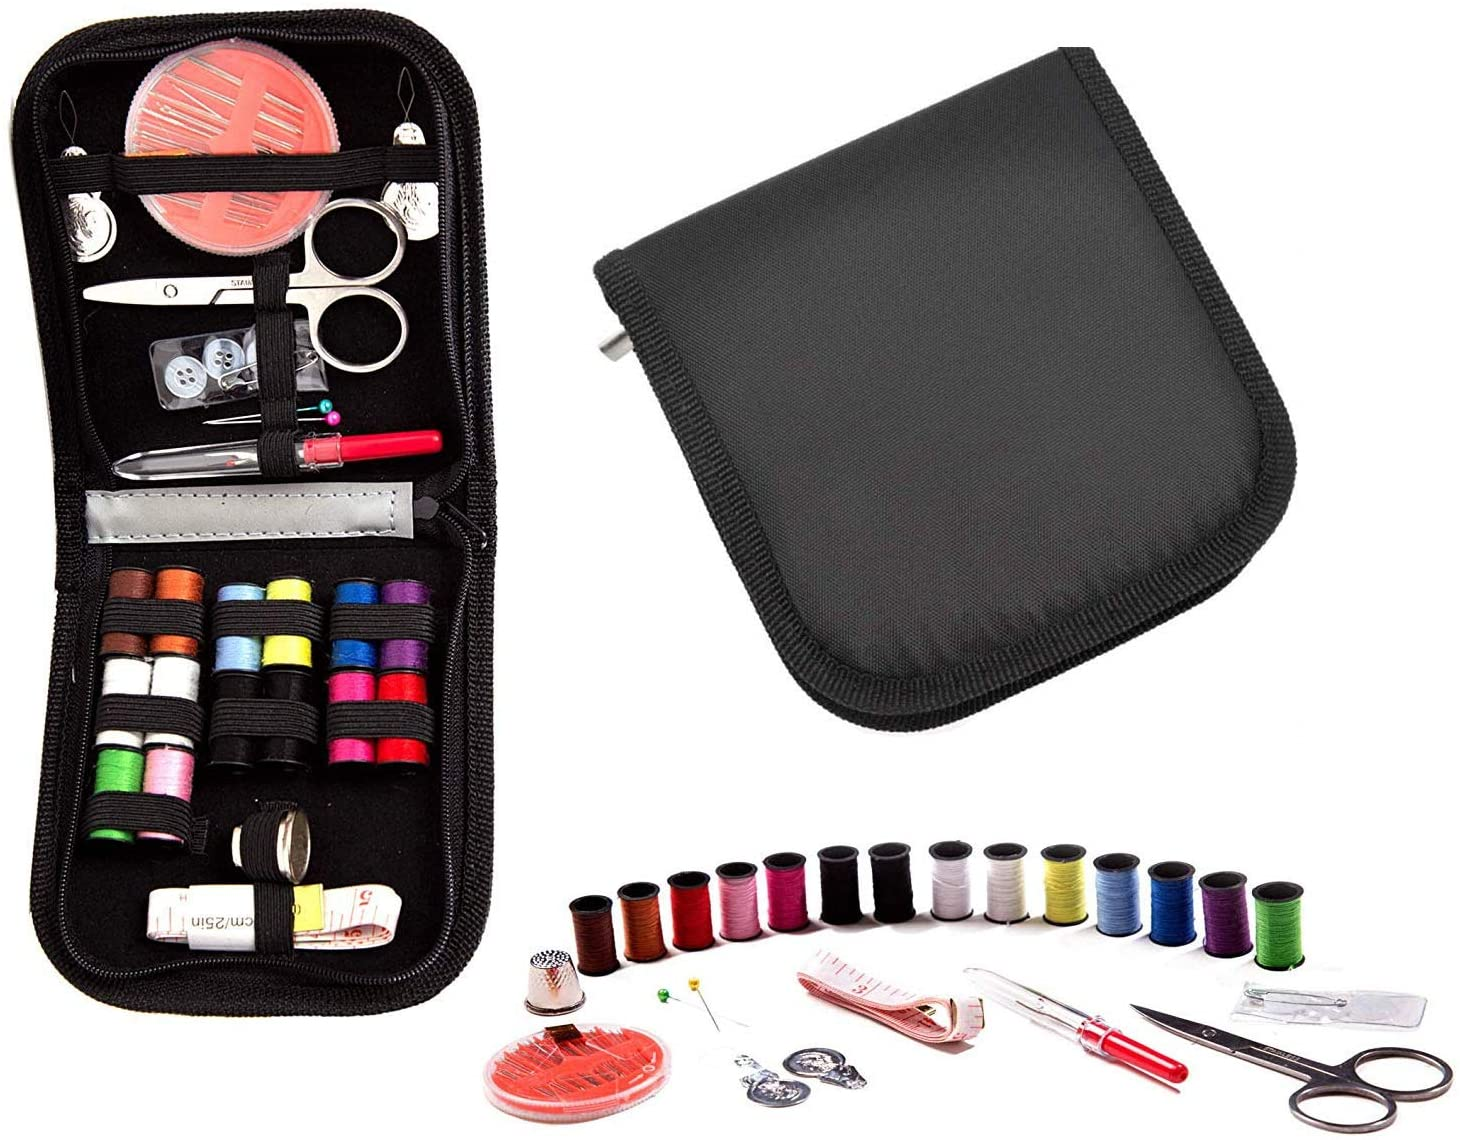 Sewing Kit,DIY Sewing Supplies Include Sewing Needles,Sewing Thread,Scissors,Tape Measure etc,Fit for Adults,Beginners,Travel and Home